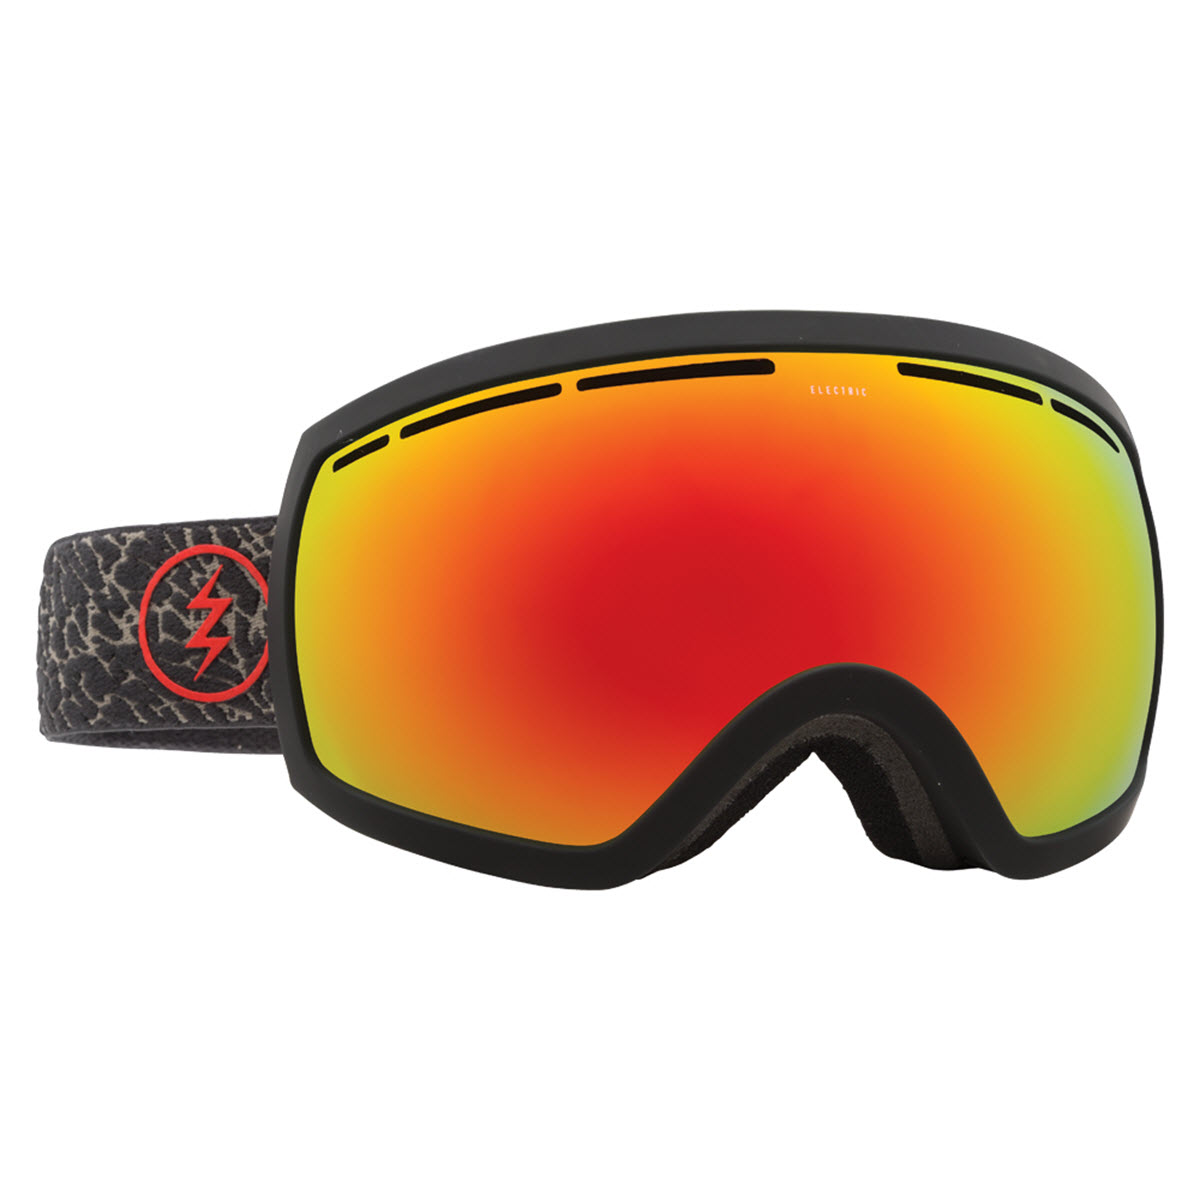 electric goggles eg25 snowboard spherical lens goggles